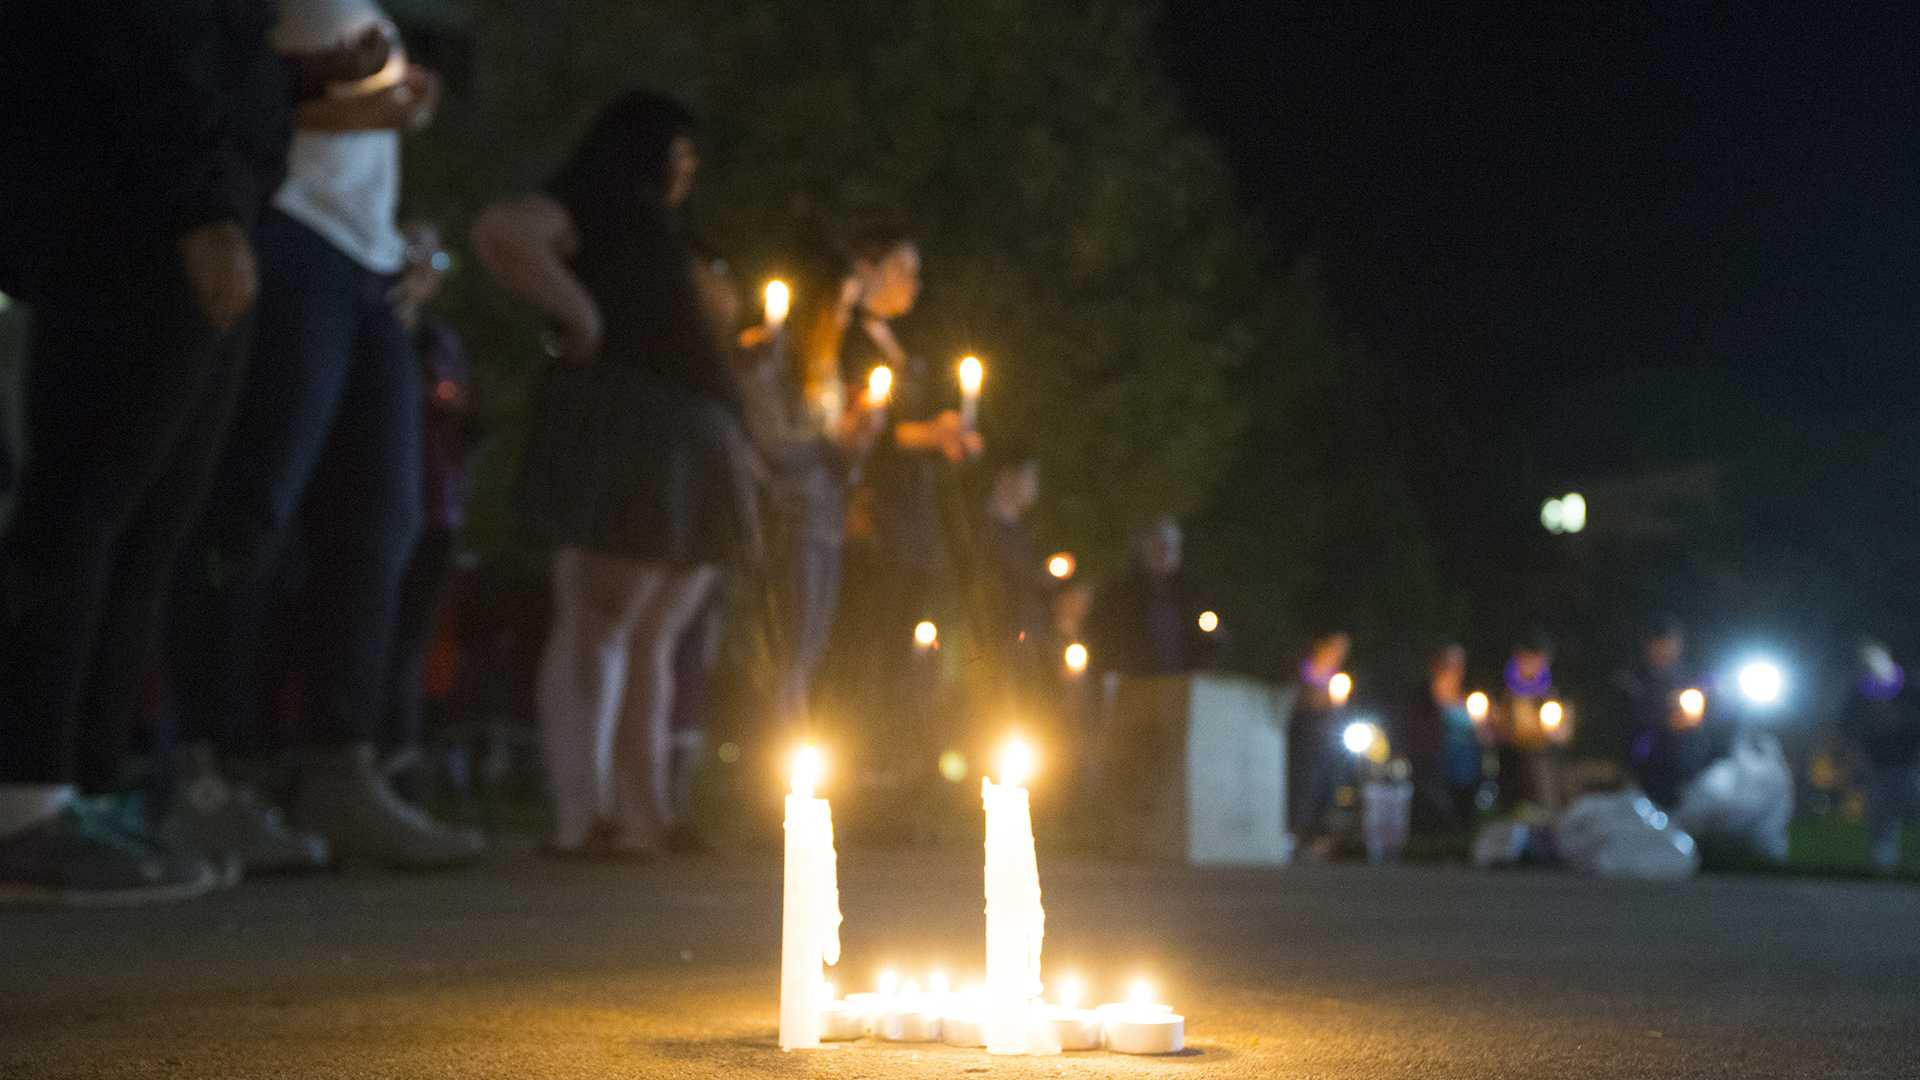 Candles burn during the UI Sister Vigil for Survivors of Campus Sexual Assault on the Pentacrest on Tuesday, Oct. 17, 2017. The event included letter writing to Iowa senators and the signing of thank you state of Iowa flags to senators fighting the withdrawal of Title IX protections for survivors of sexual assault. (Lily Smith/The Daily Iowan)